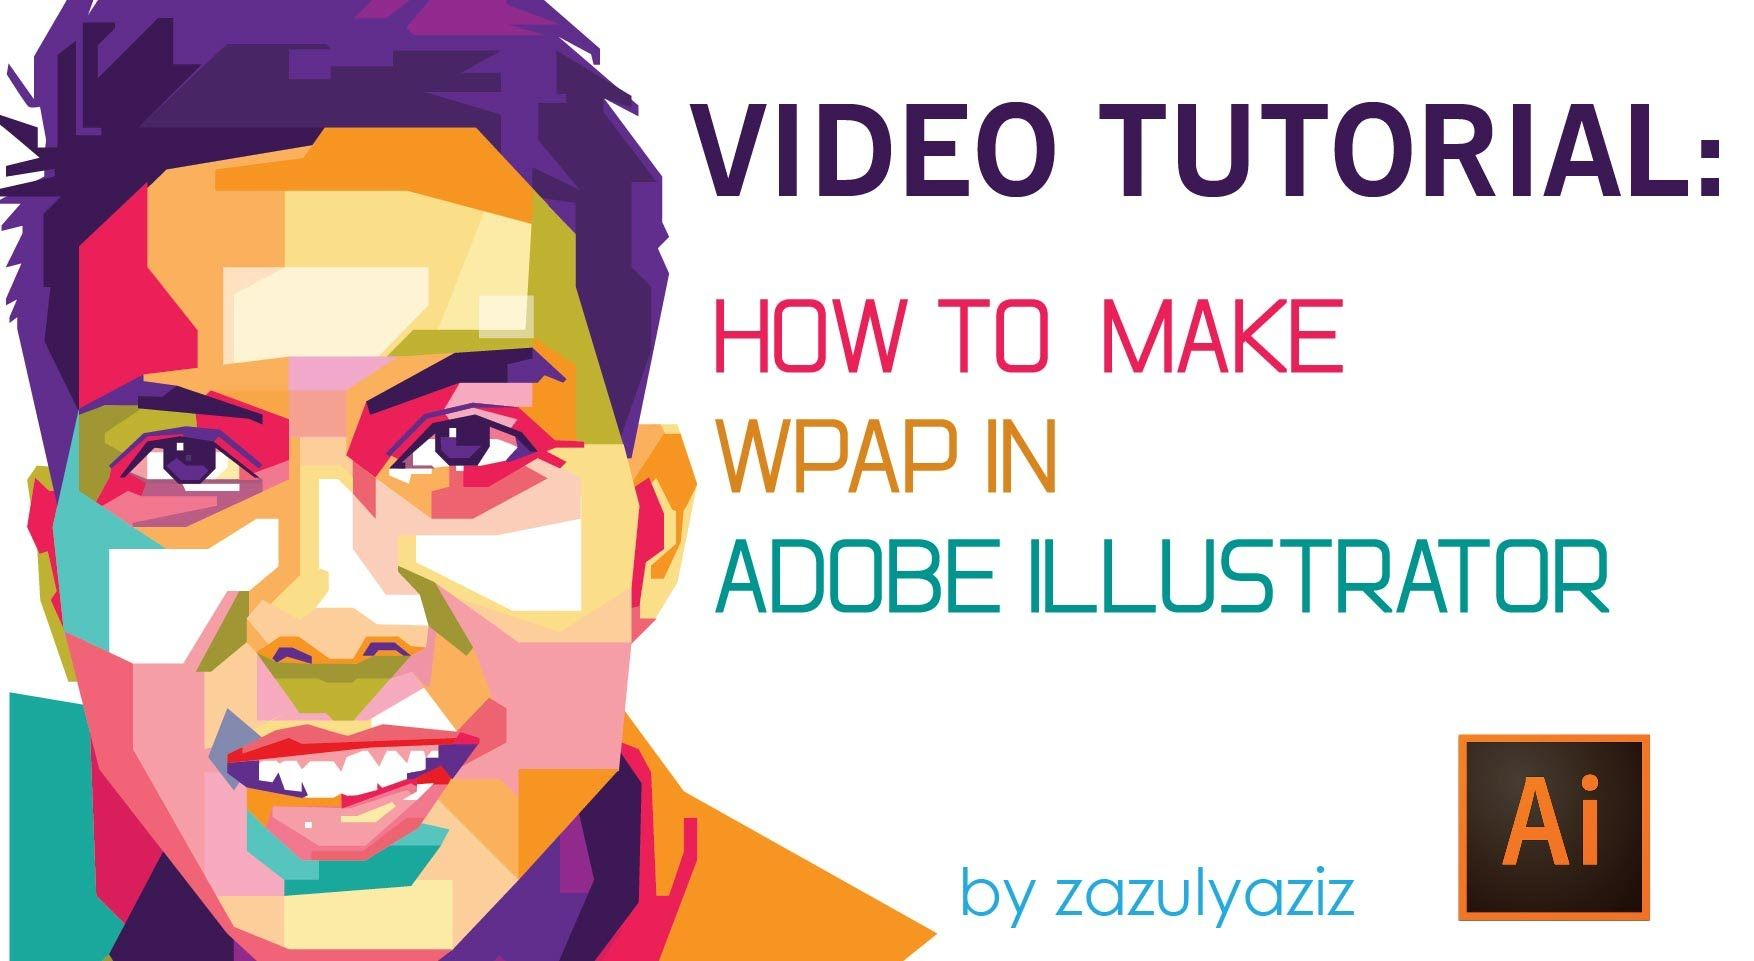 Tutorial video how to make wpap in adobe illustrator youtube tutorial video how to make wpap in adobe illustrator youtube baditri Gallery